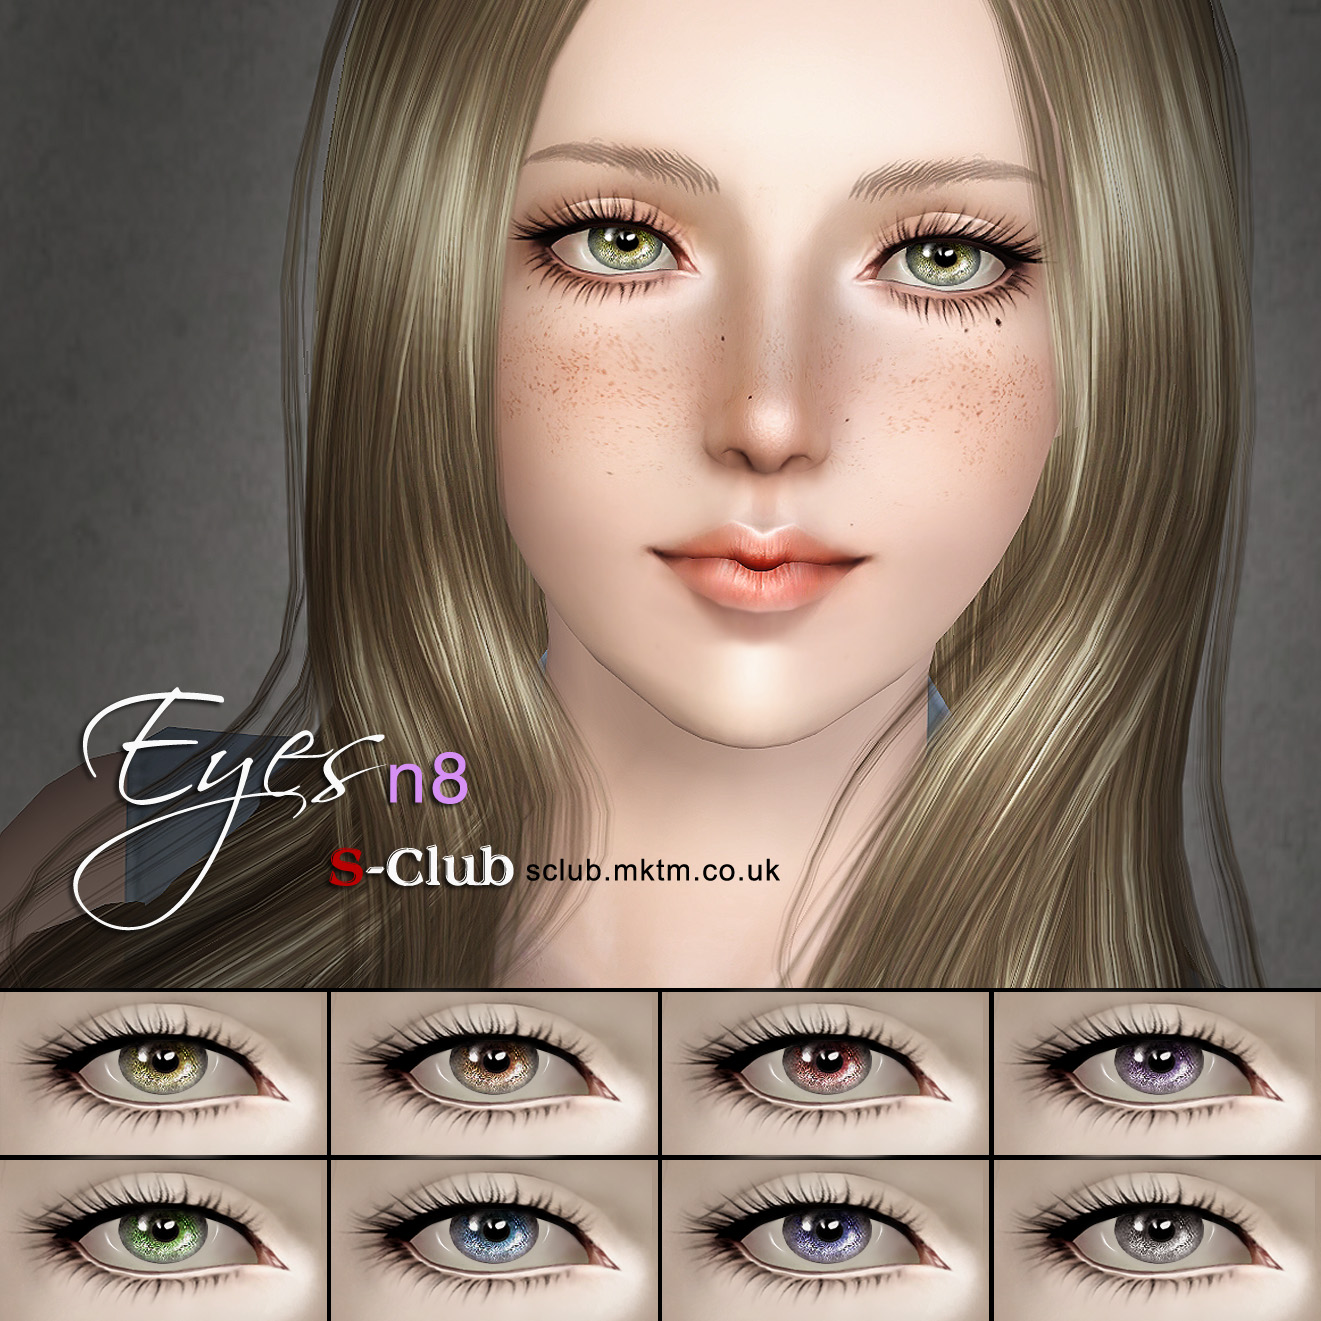 Eyes N8 by S-Club